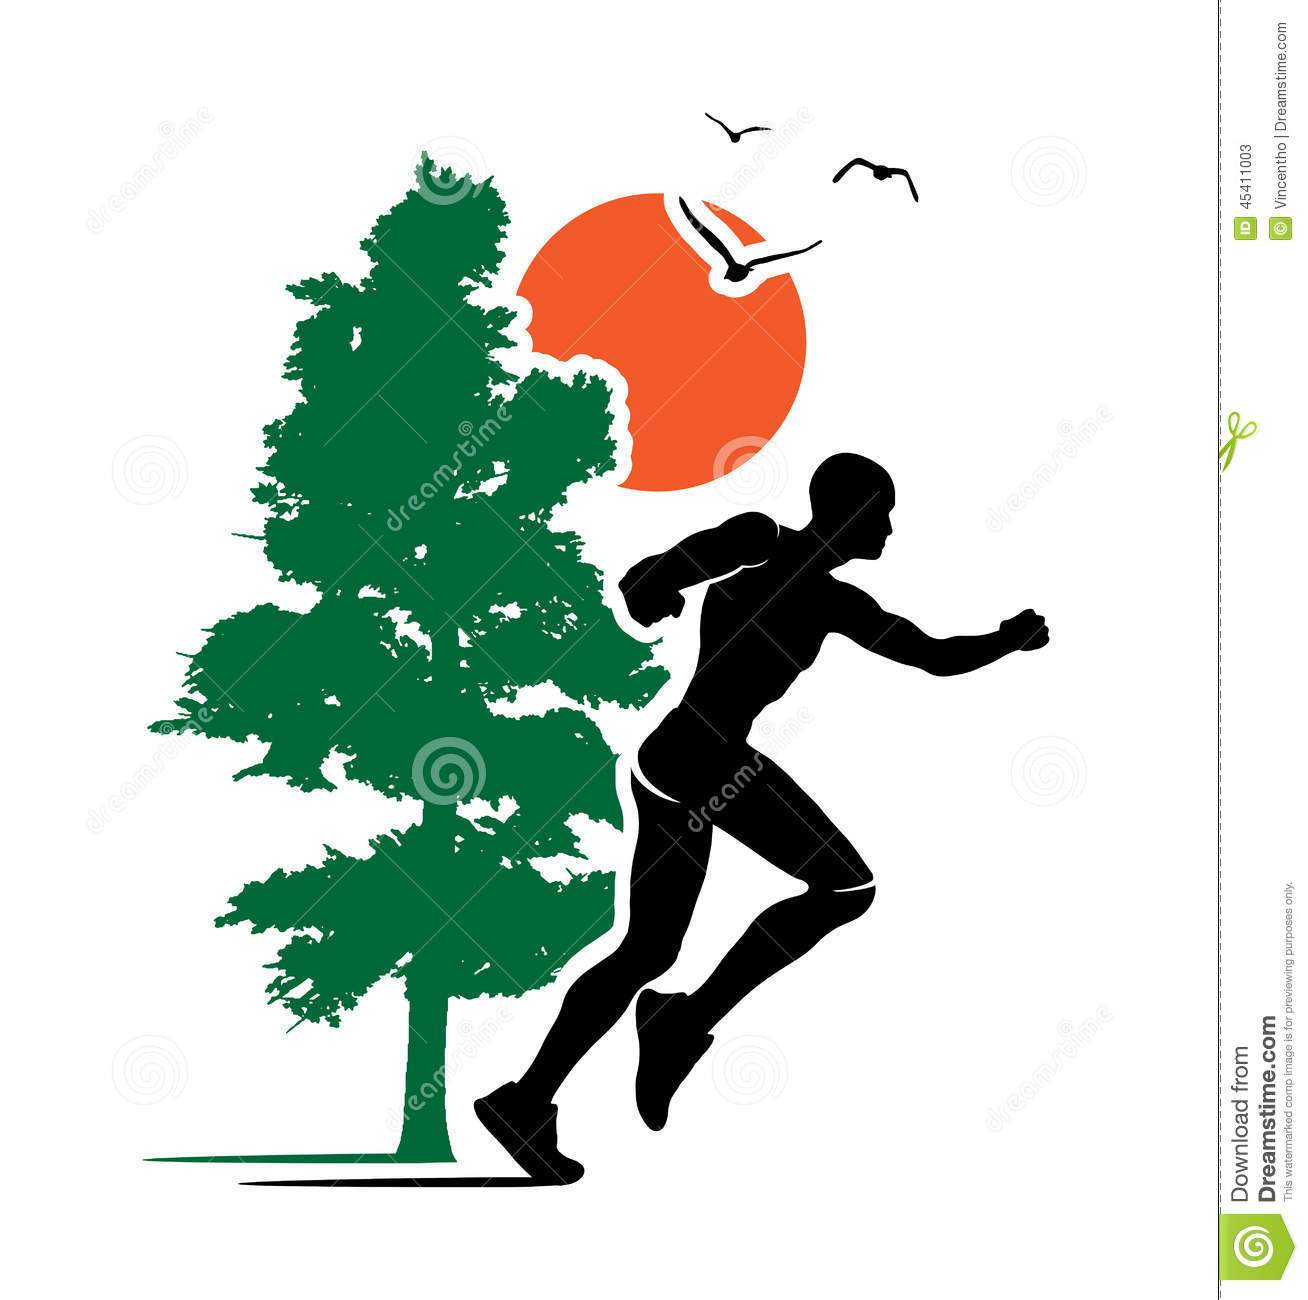 Trail running clipart clip freeuse Trail running clipart 4 » Clipart Portal clip freeuse